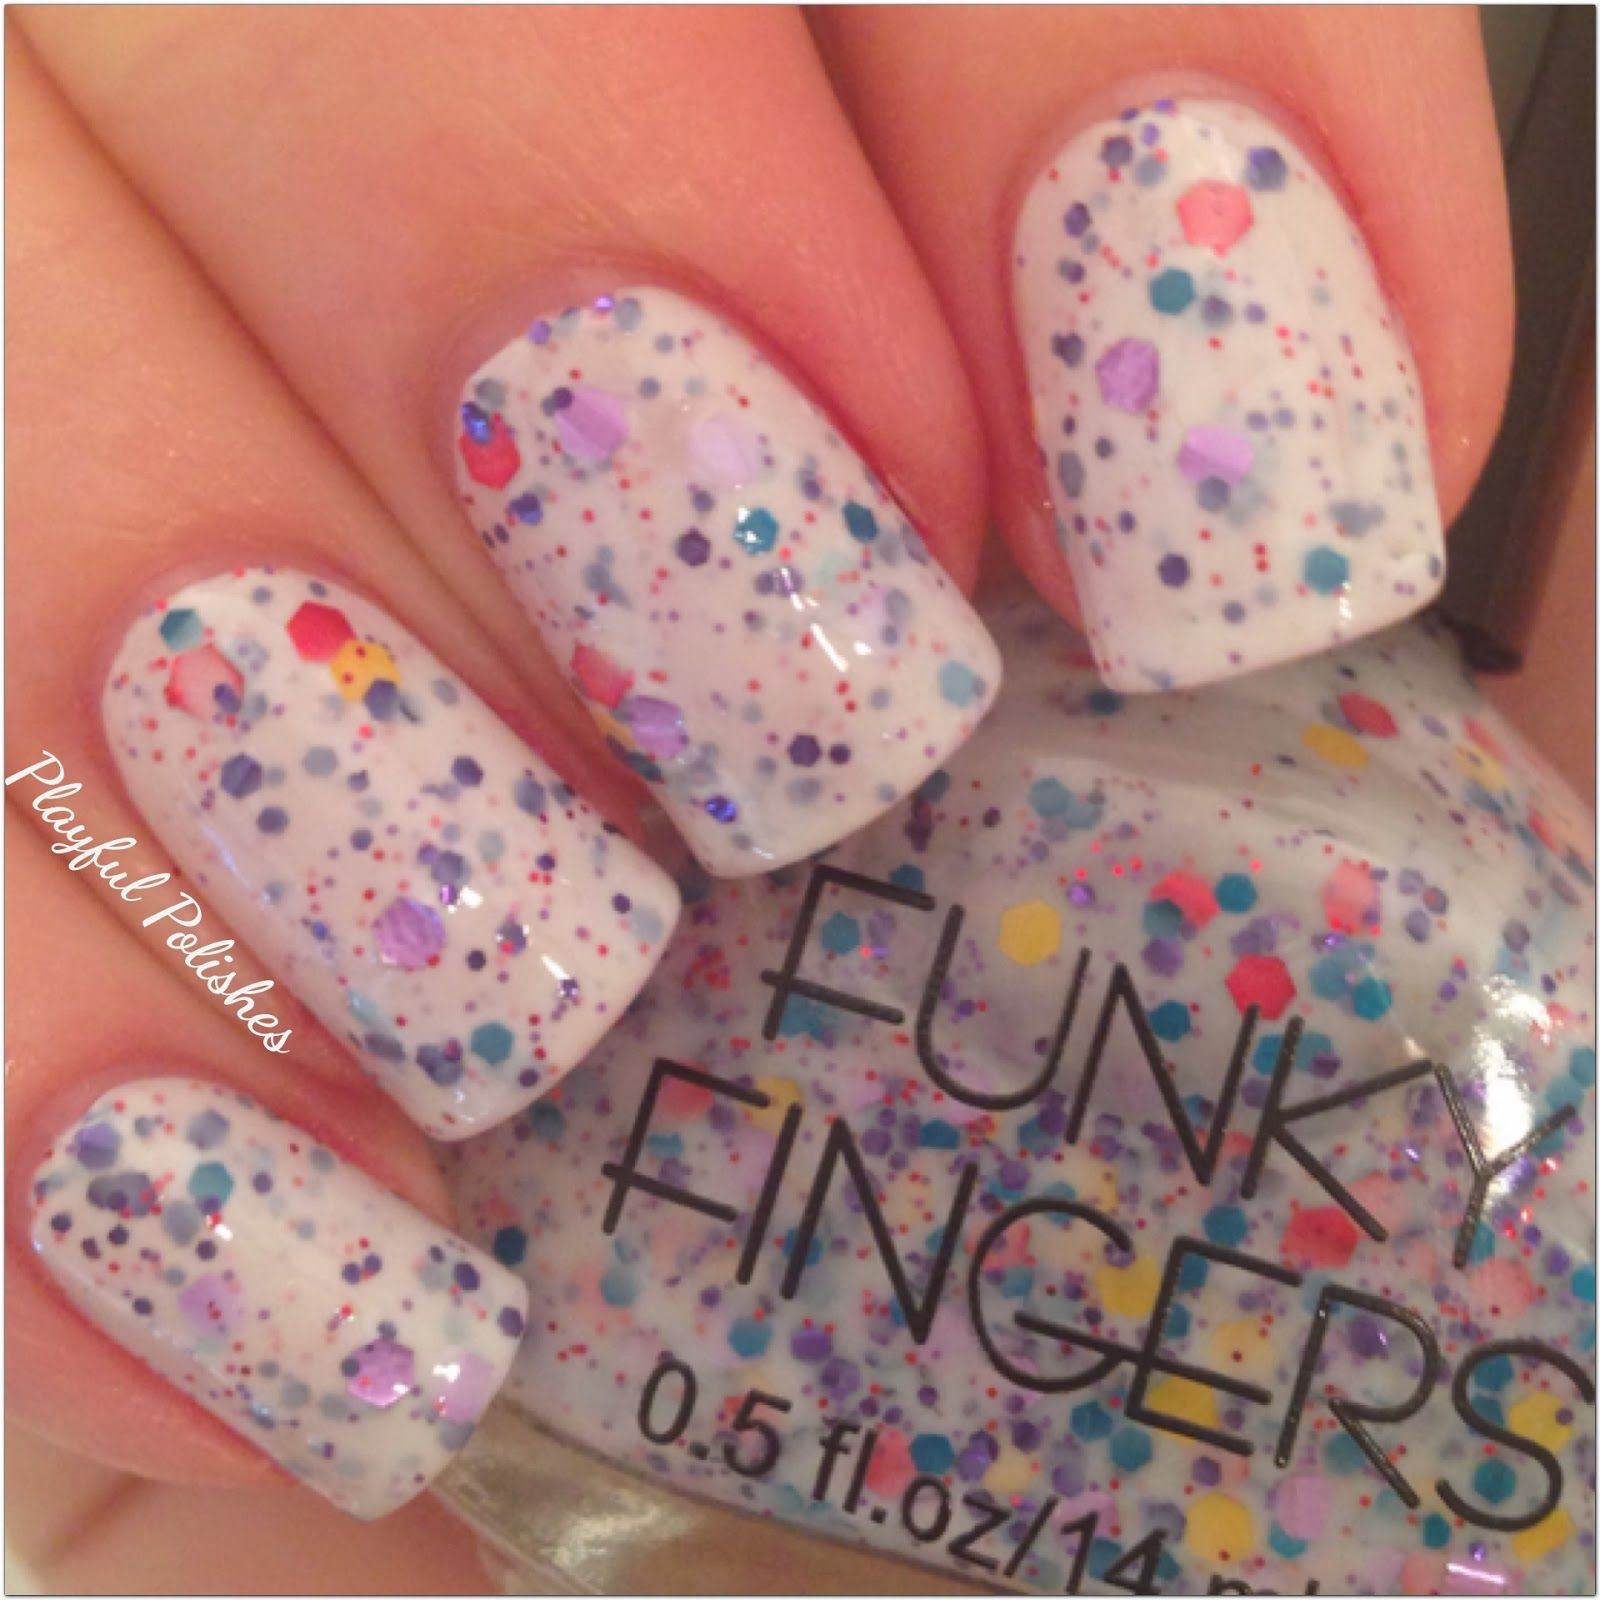 Funky Fingers - Jawbreaker | Nails | Pinterest | Funky fingers and ...